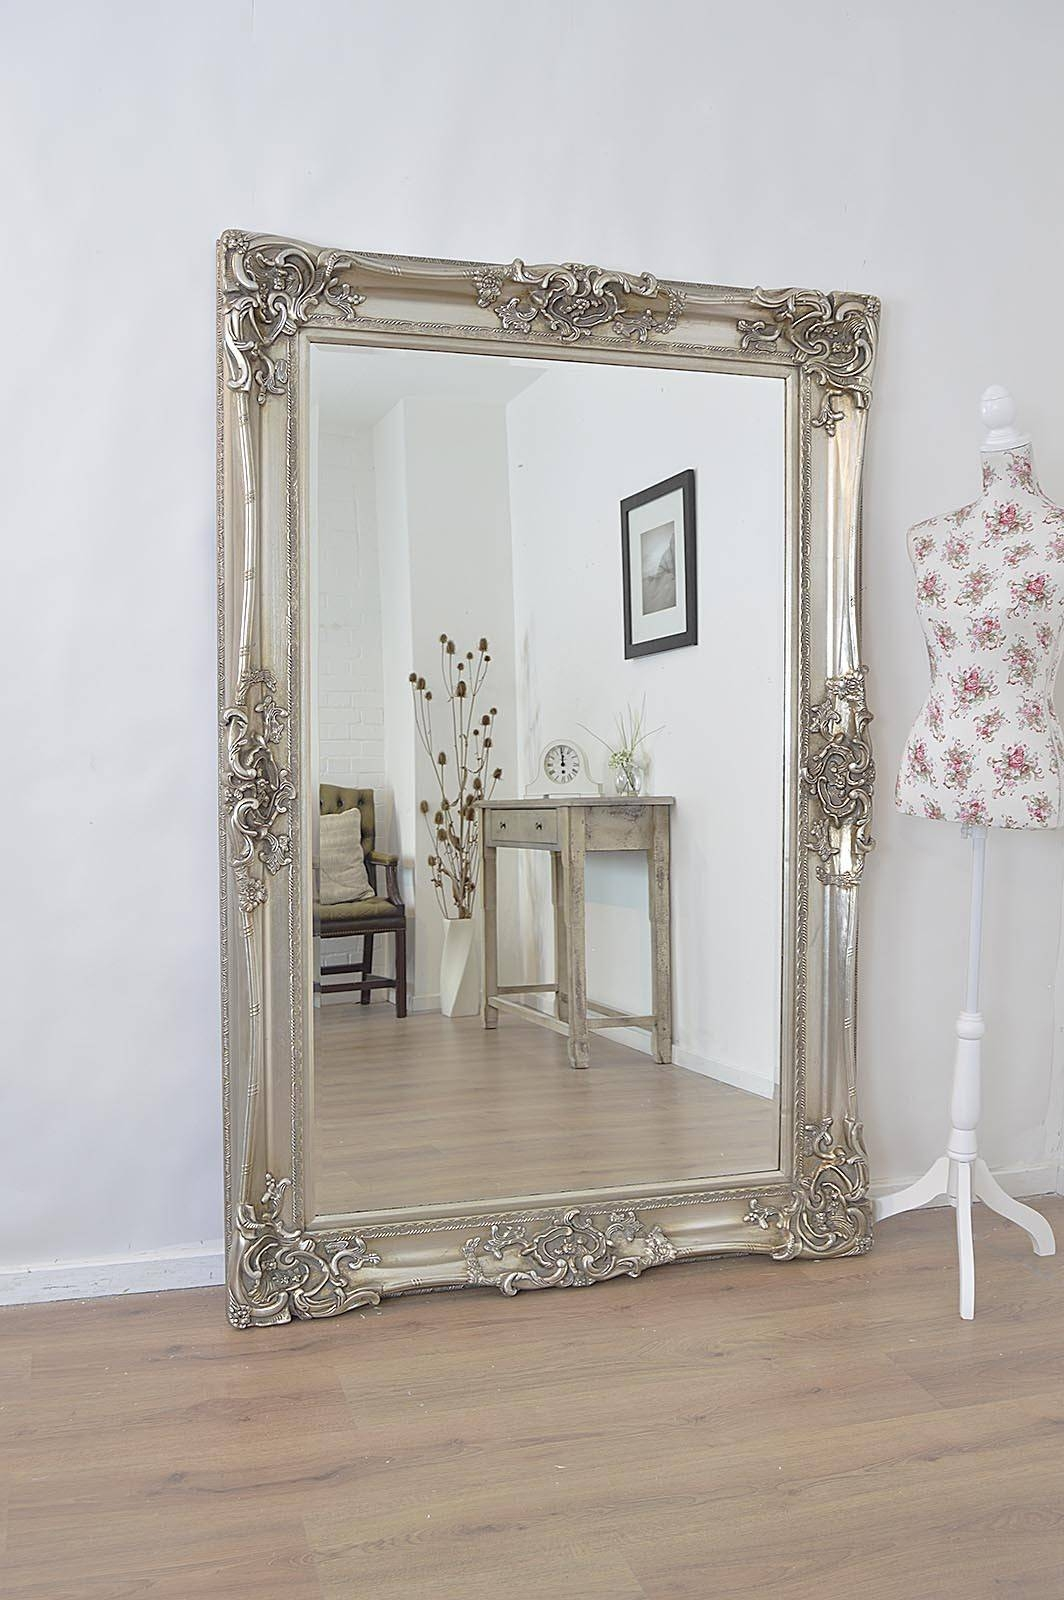 Large Antique Wall Mirror Ornate Frame Antique Ornate Wall Mirrors pertaining to Large Ornate Silver Mirrors (Image 11 of 25)